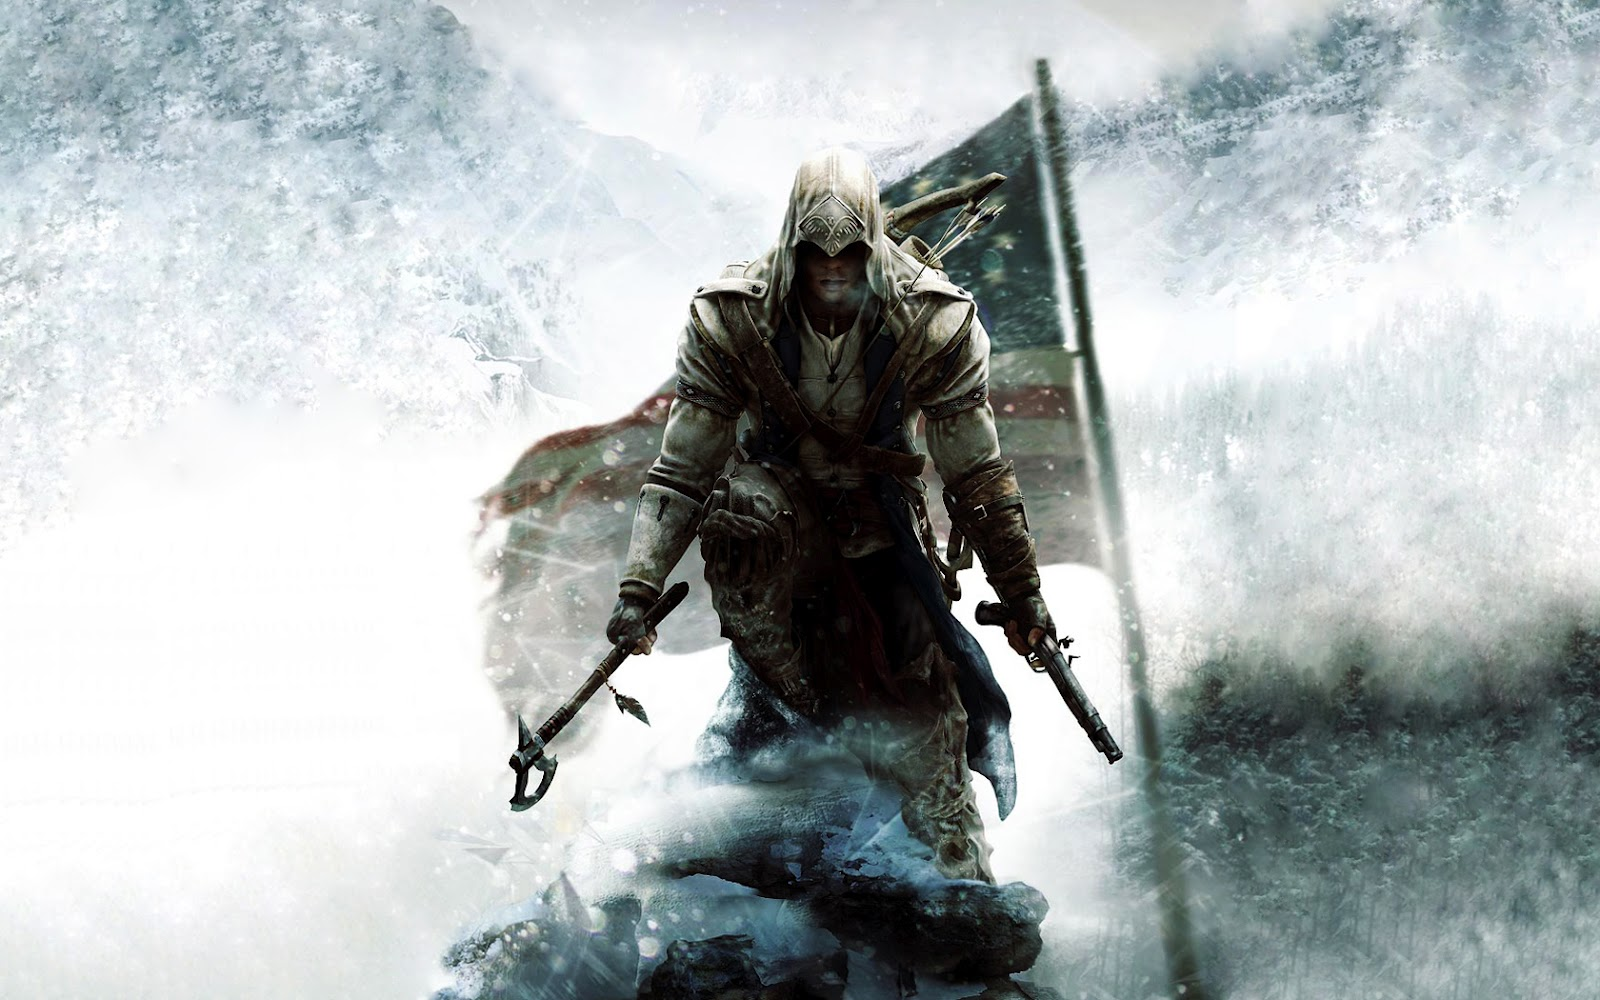 http://1.bp.blogspot.com/-k8lZFcGFdkg/T5qppdVFyjI/AAAAAAAABb4/BLga-AmCF34/s1600/Assassins_Creed_Ezio_with_Gun_and_Axe_HD_Wallpaper-Vvallpaper.Net.jpg